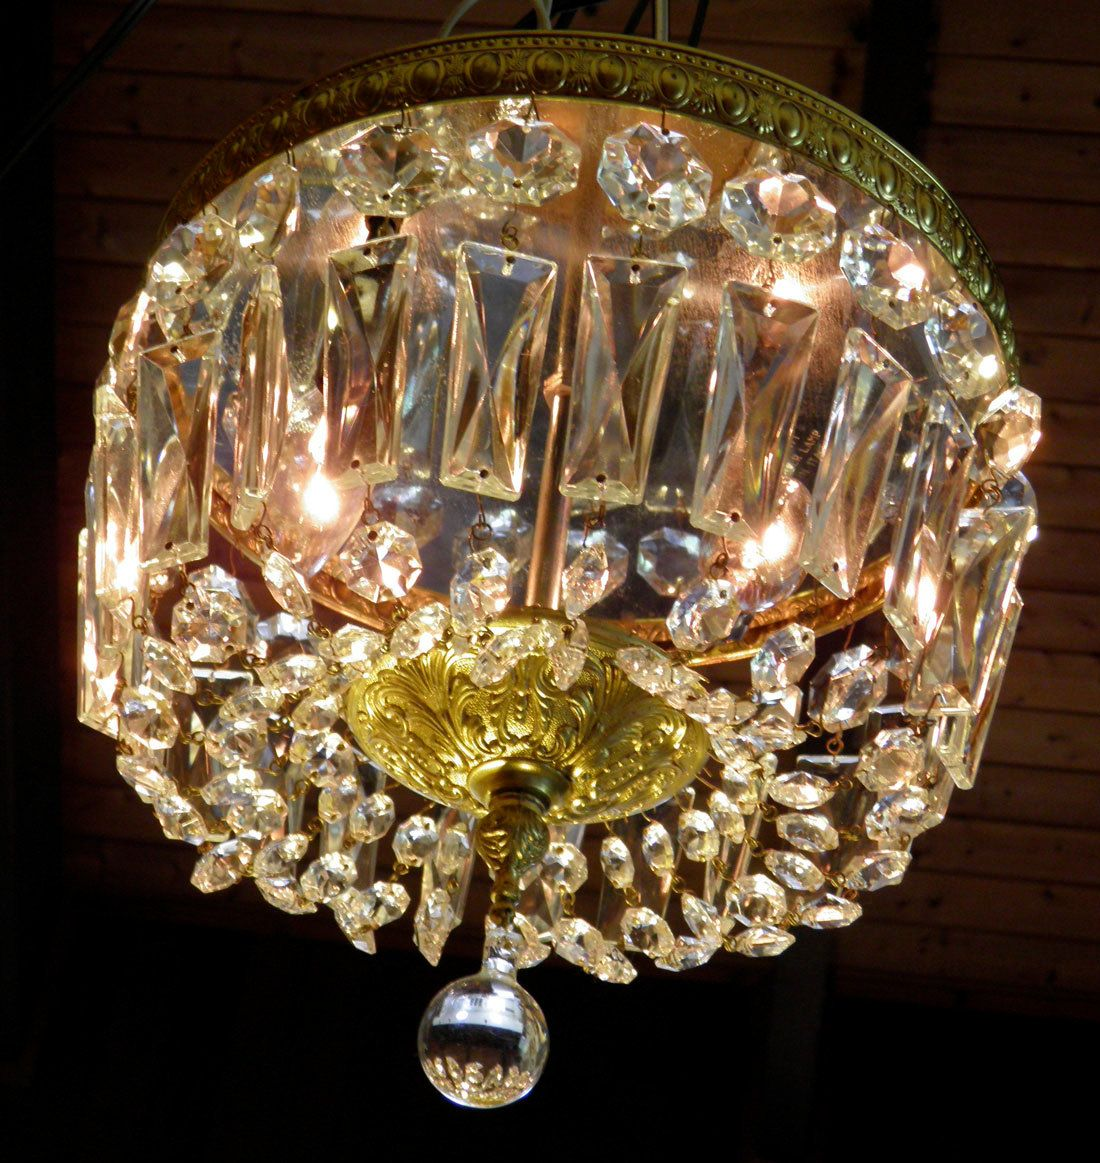 Vintage Crystal Chandelier Lighting Flush Mount Light by lightlady